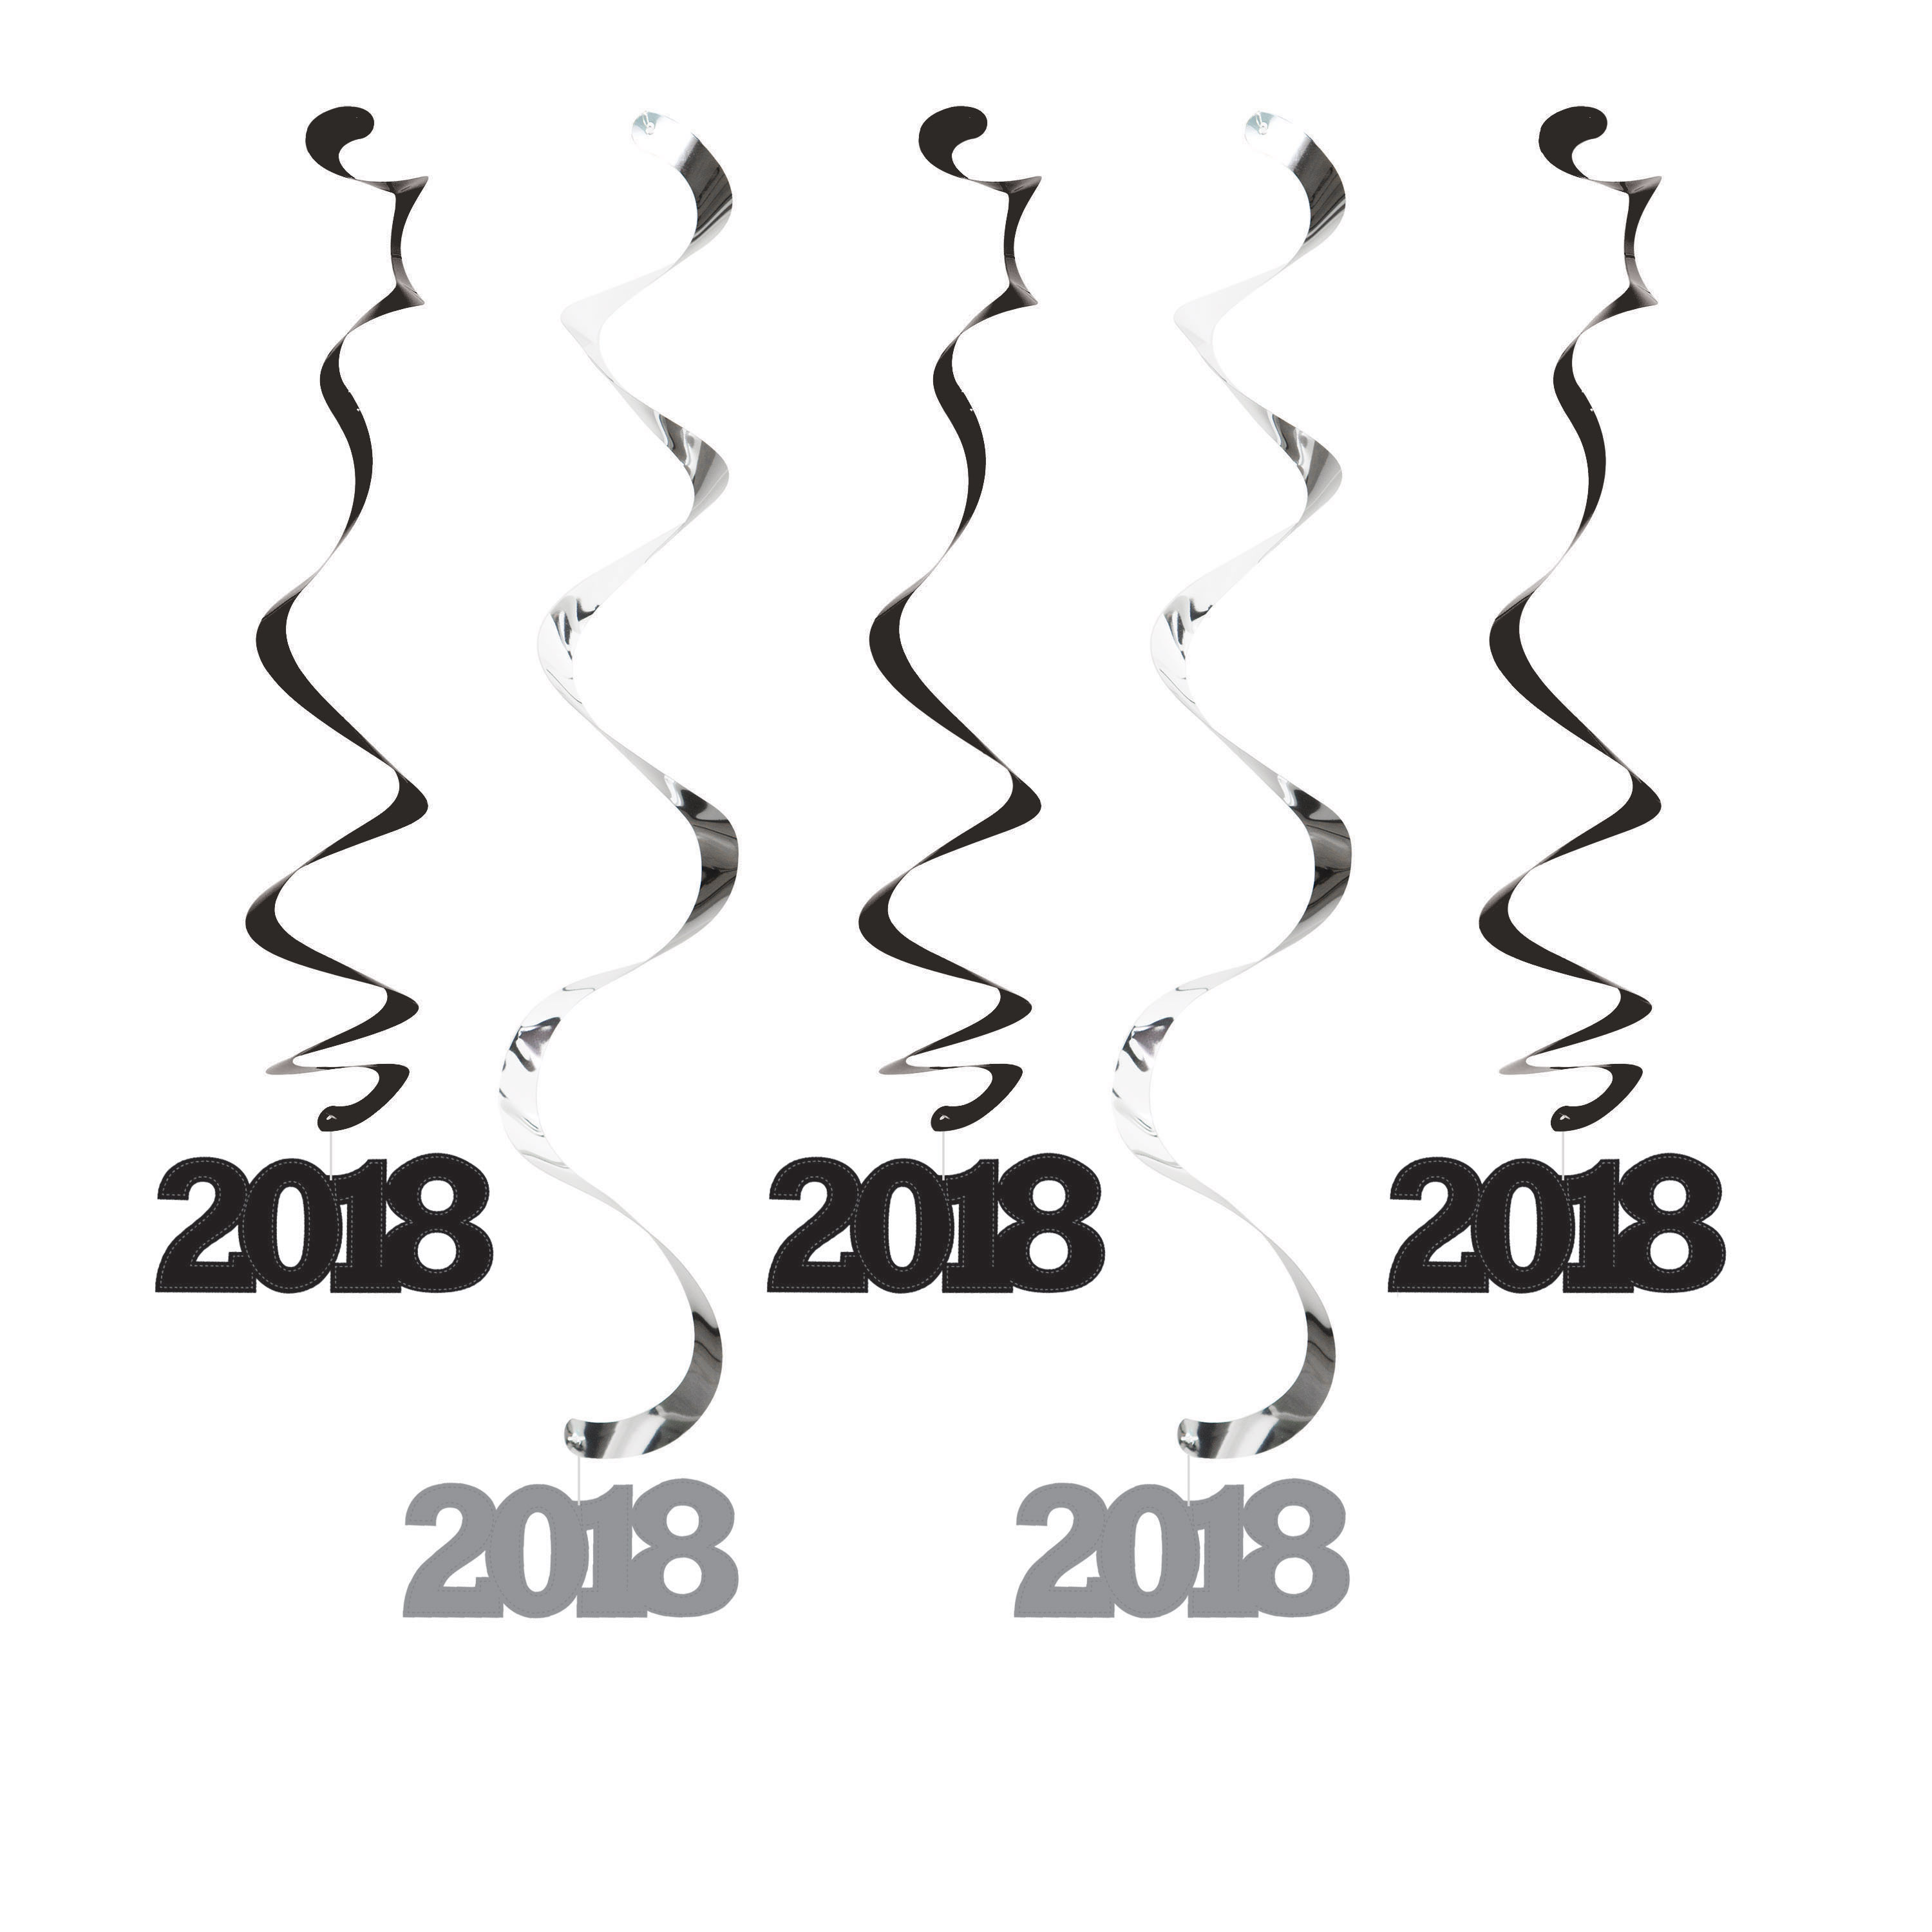 2018 Black and Silver Dizzy Danglers, 5 pk